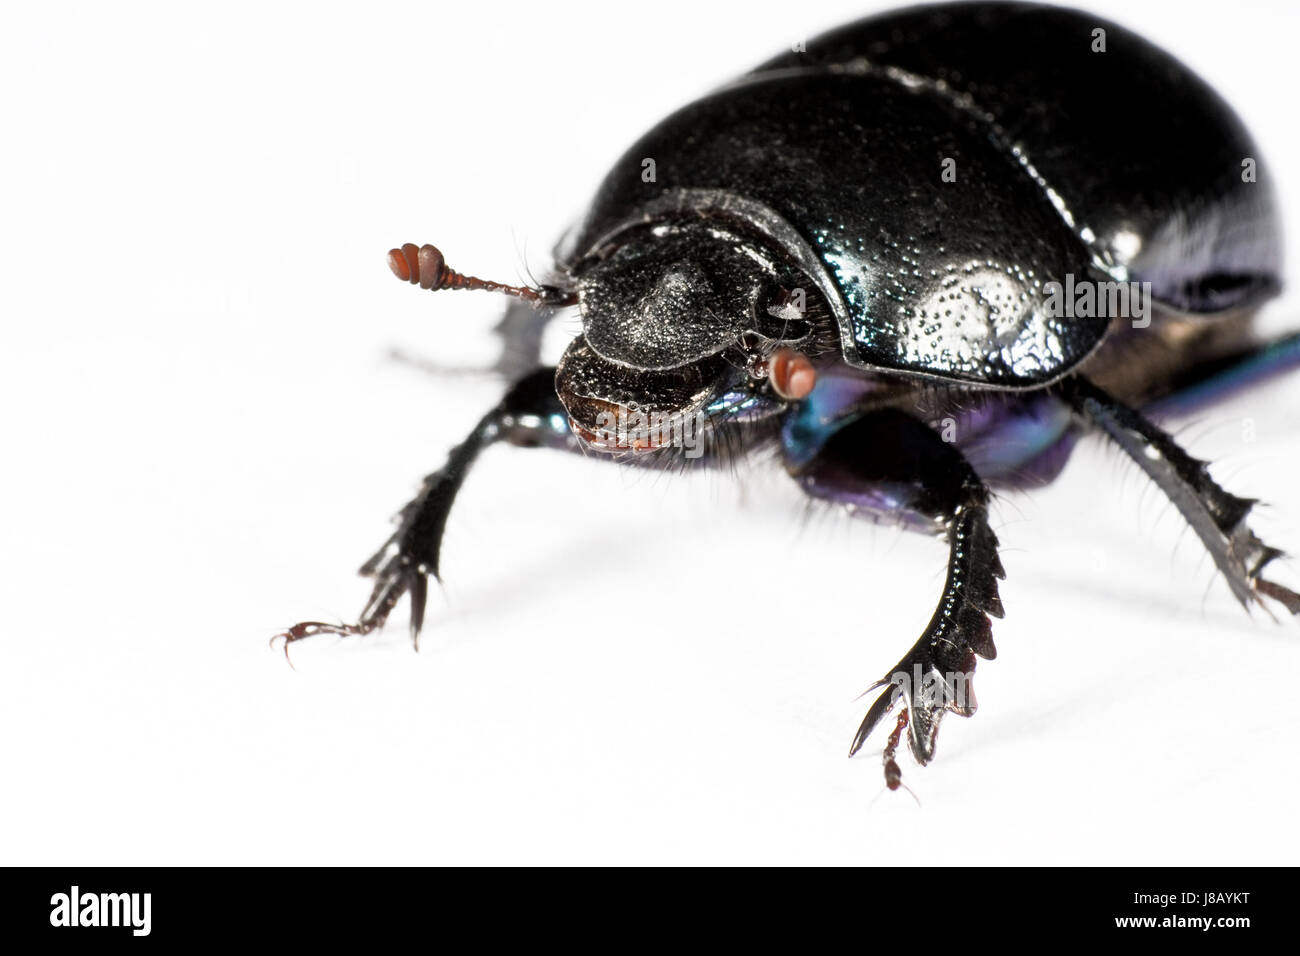 black bug in upper left corner - Stock Image